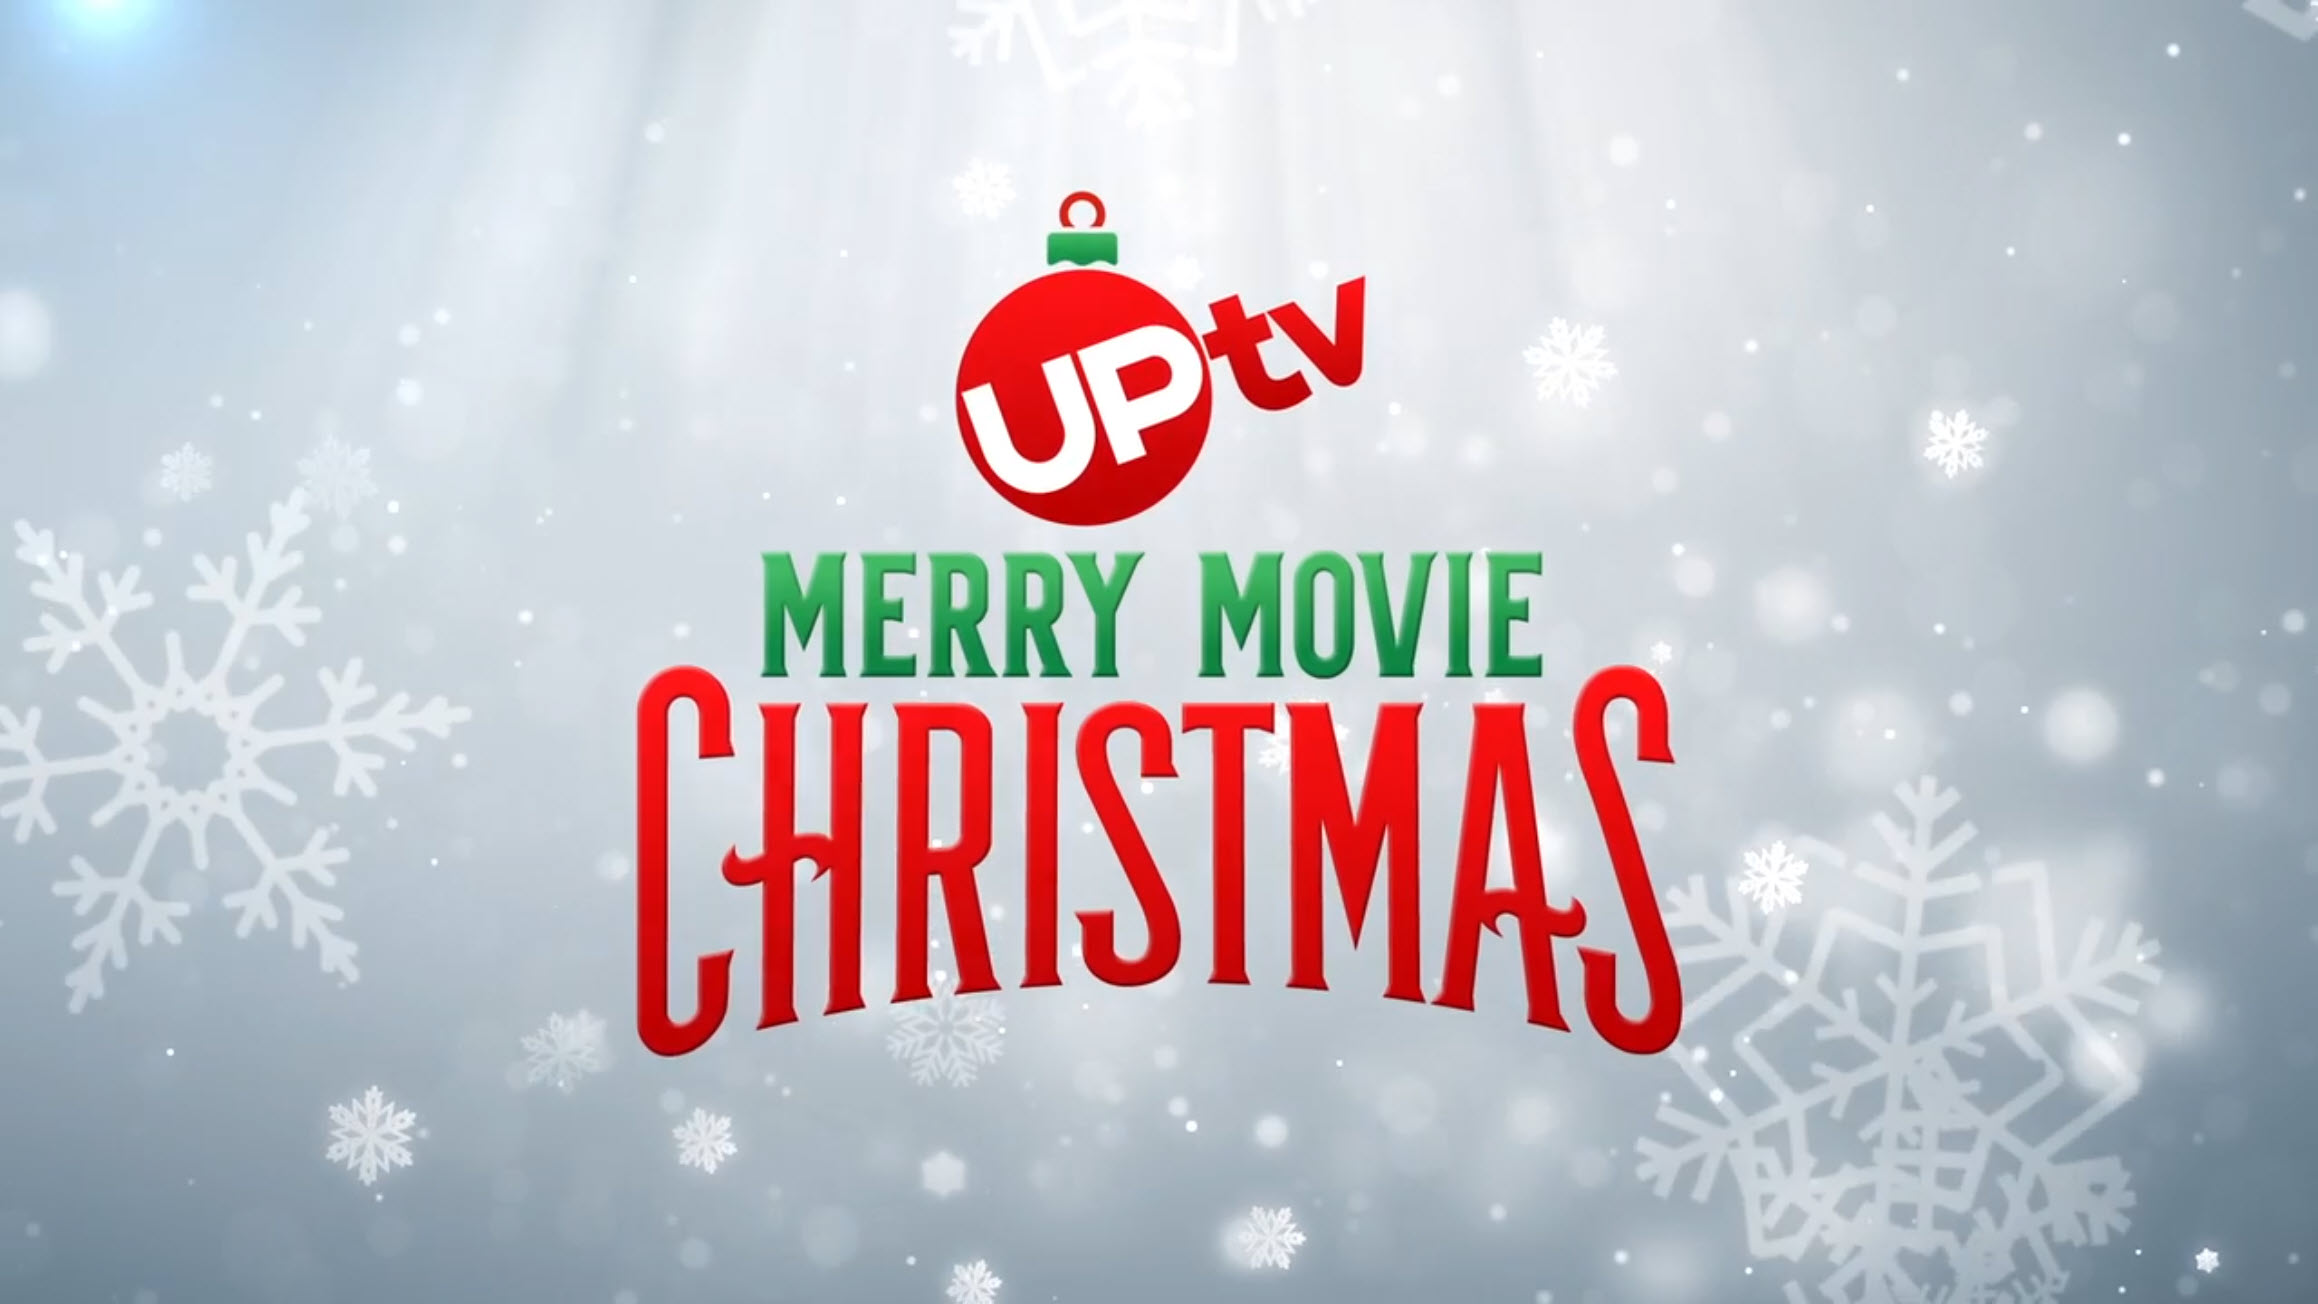 Christmas with a Prince: The Royal Baby - It's a Merry Movie Christmas on UPtv!